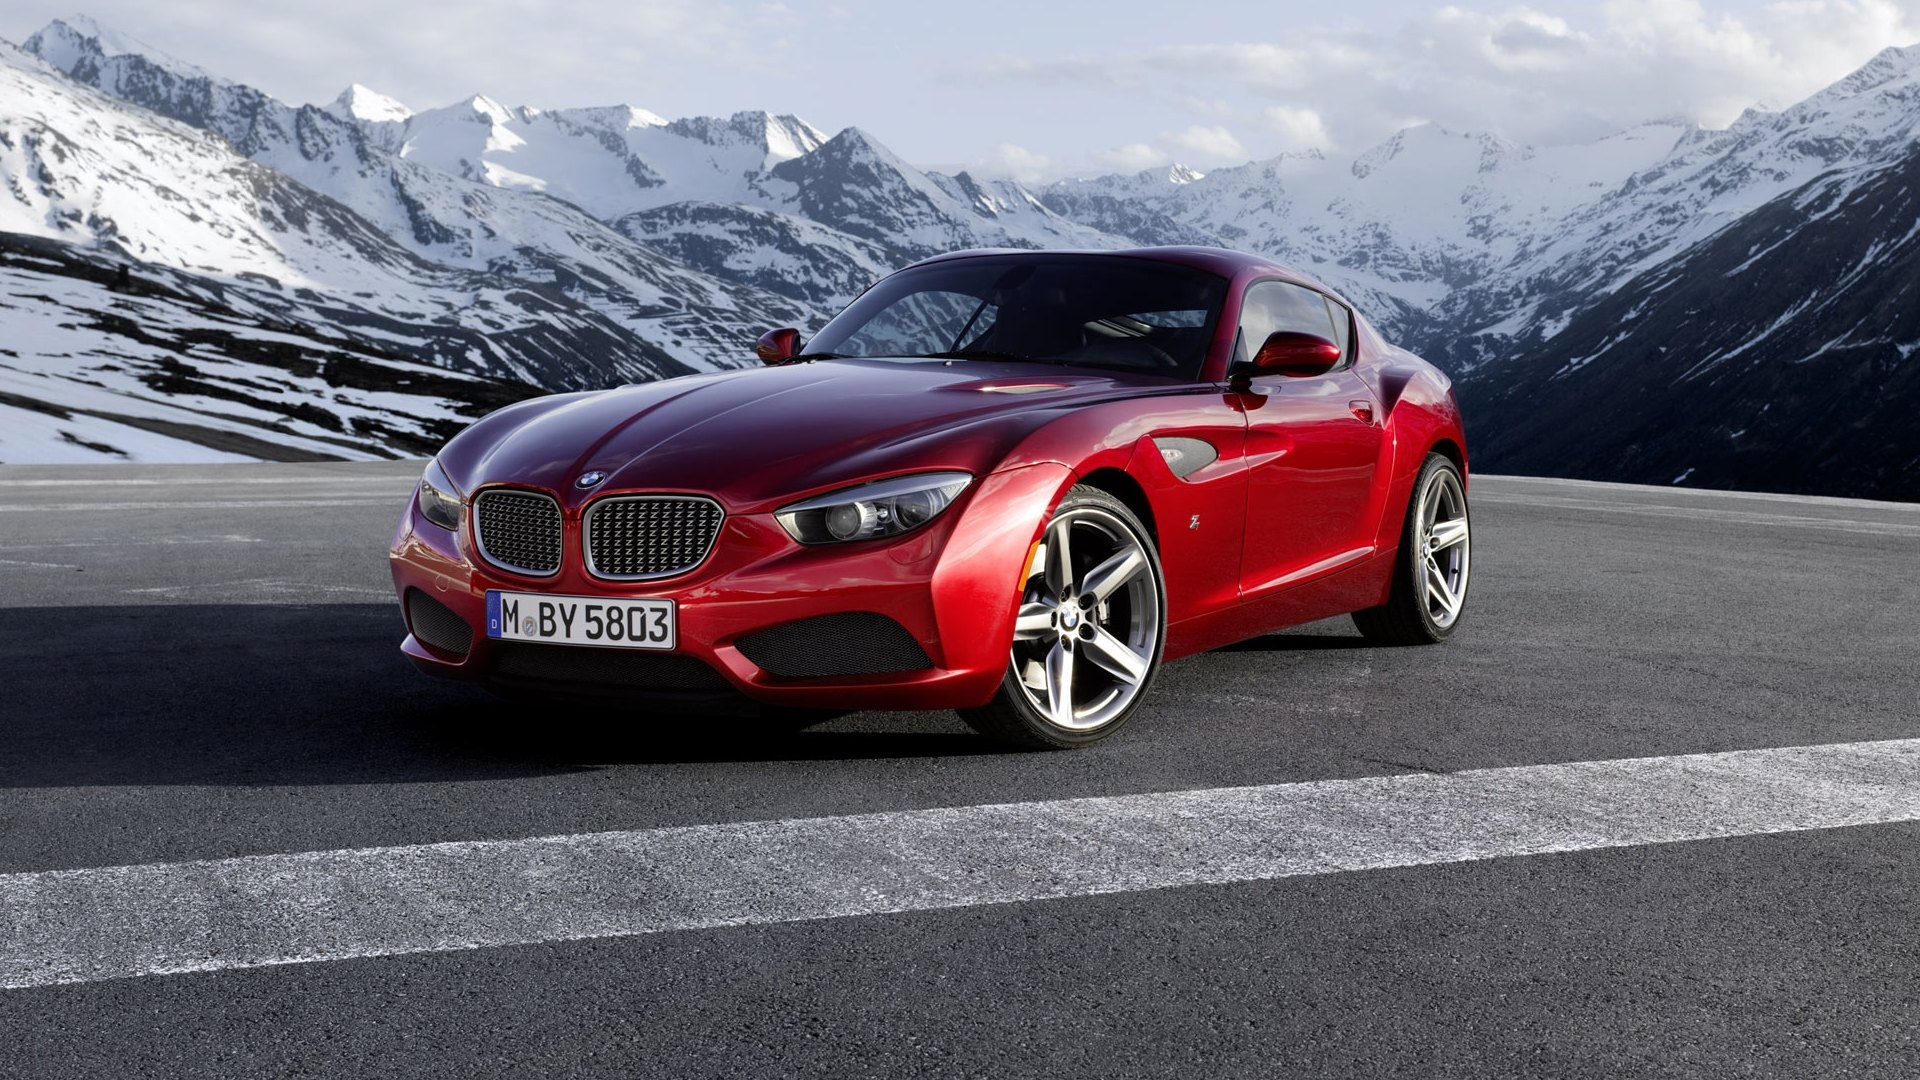 1920x1080 - BMW Zagato Coupe Wallpapers 2